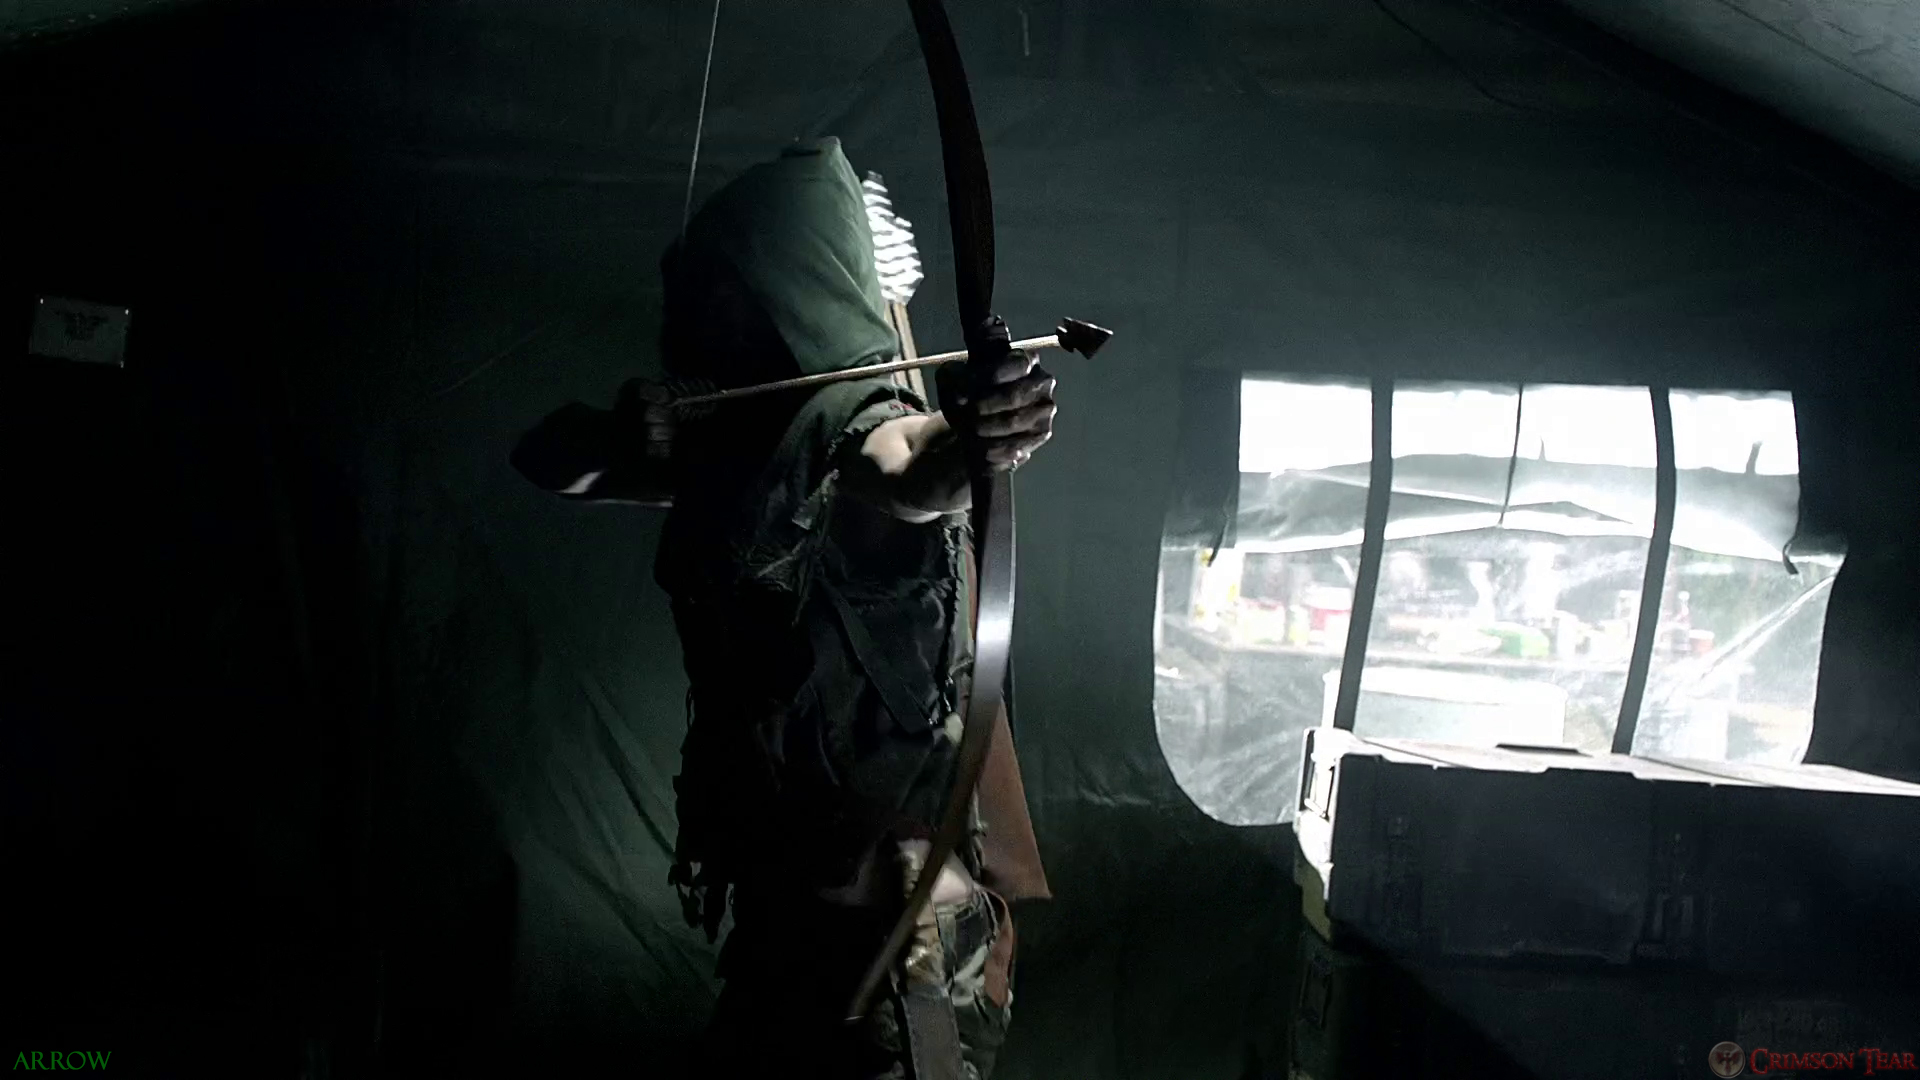 Green Arrow Wallpaper Cw Arrow season 1 the green yao 1920x1080